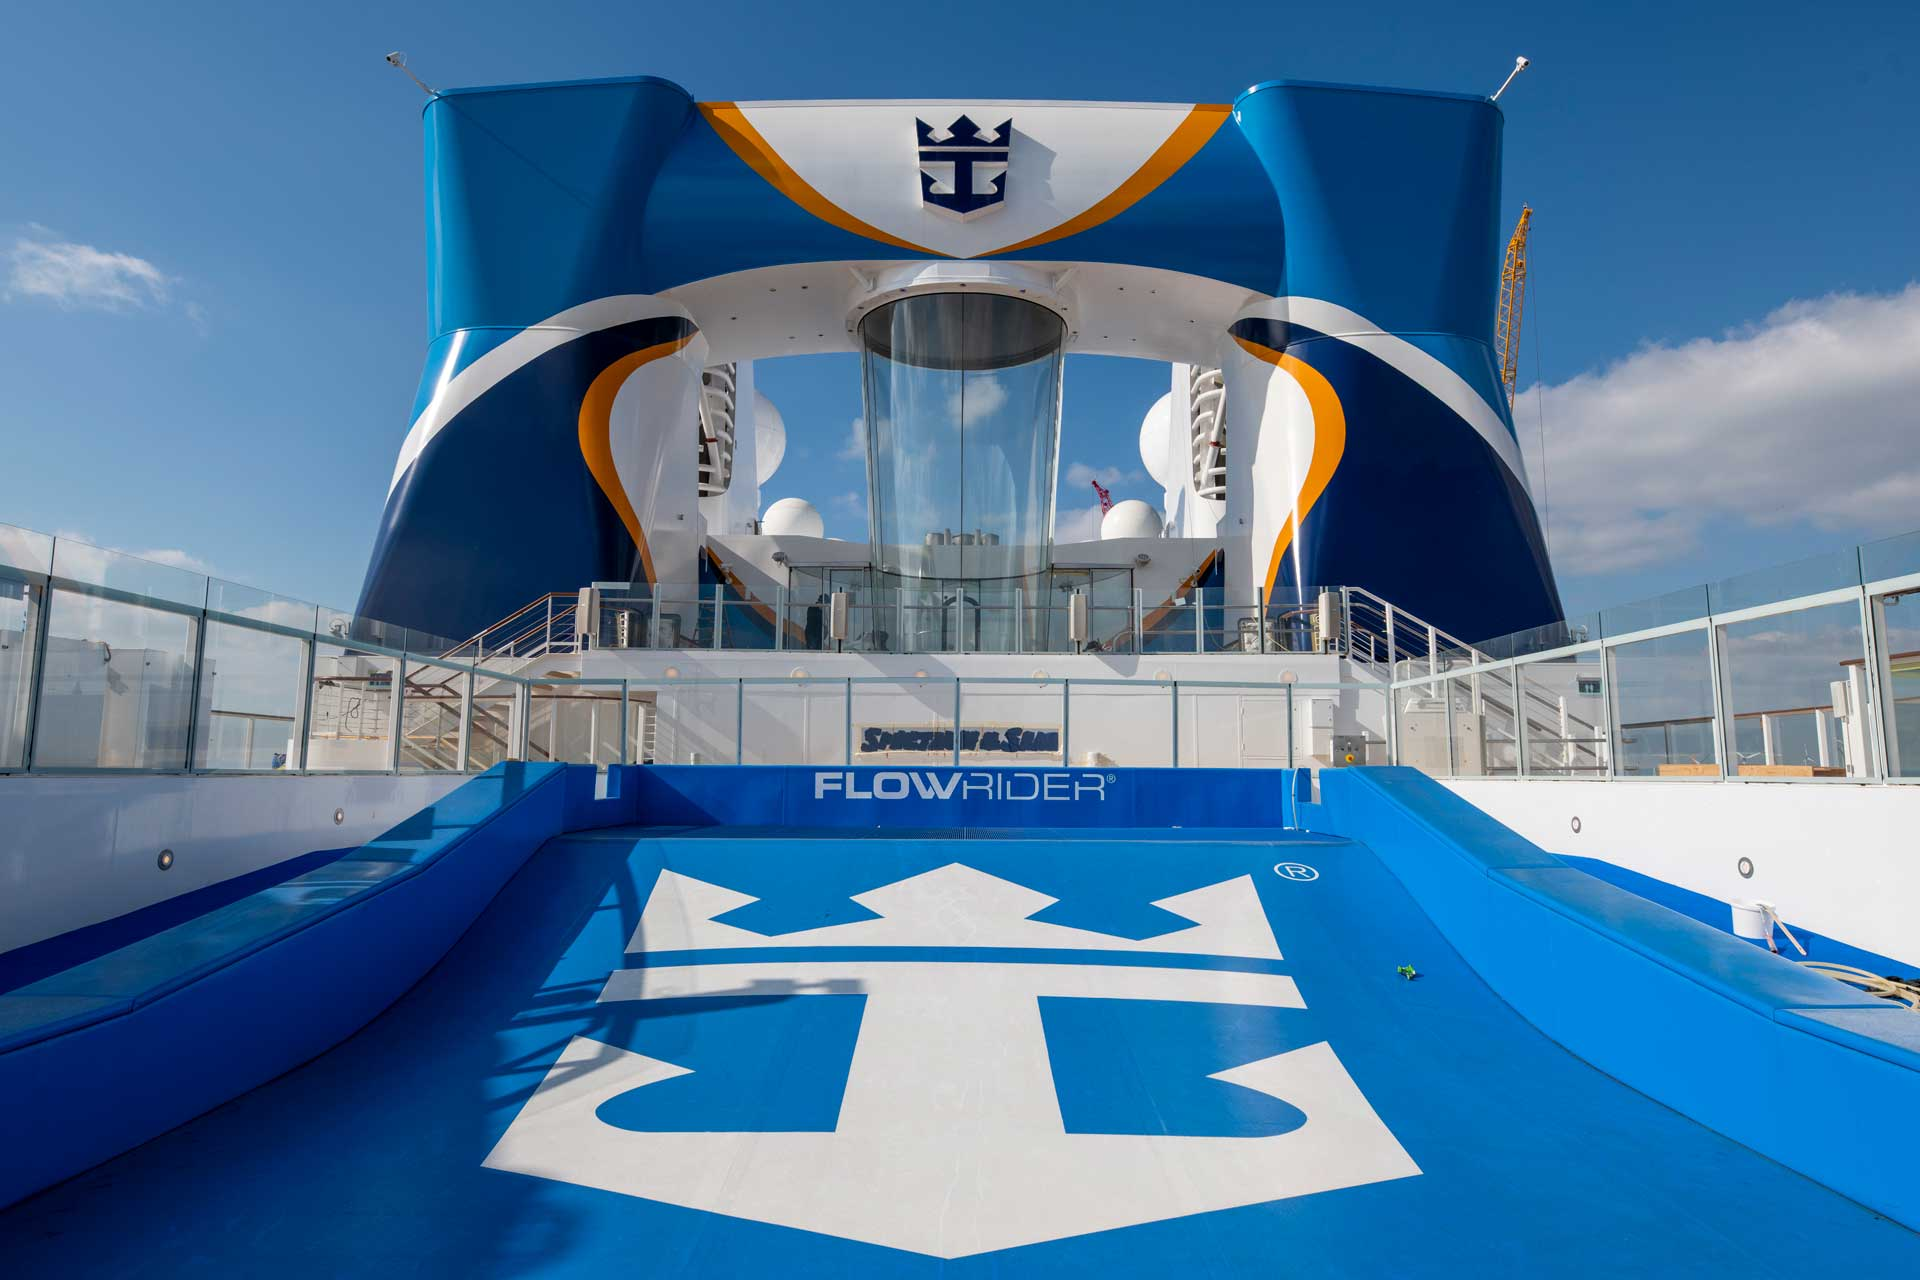 Spectrum of the Seas Flowrider